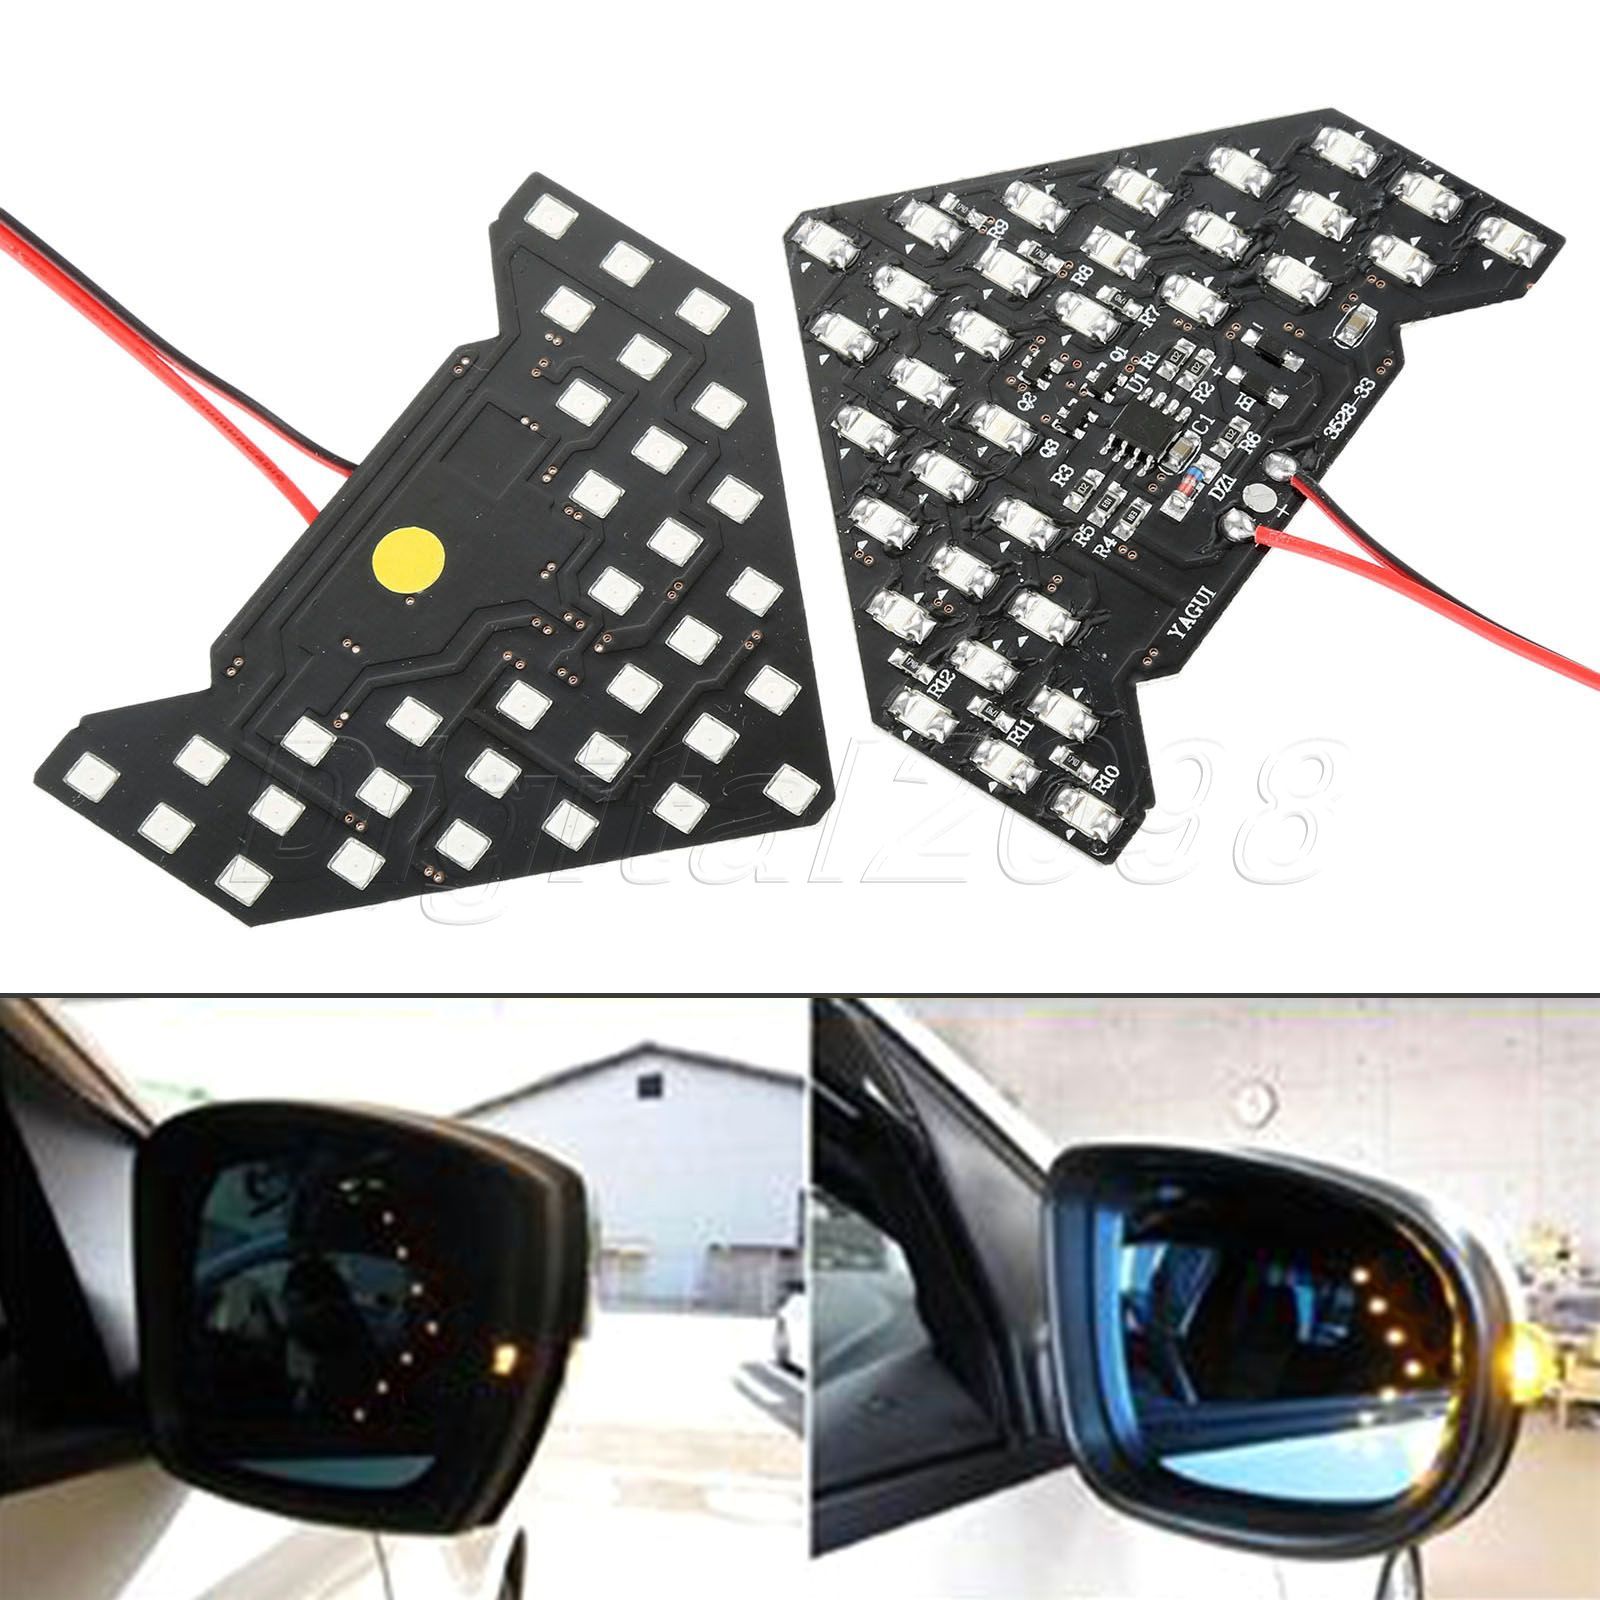 Yetaha 2PCS Led Turn Signal Lights Arrows Lamp Indicator Car Rearview Mirror Panel Yellow Blue Red Color 33 SMD LED High Quality leadtops 2pcs 33 smd led arrow panels car side mirror turn signal indicator lights sequential yellow red blue green white be